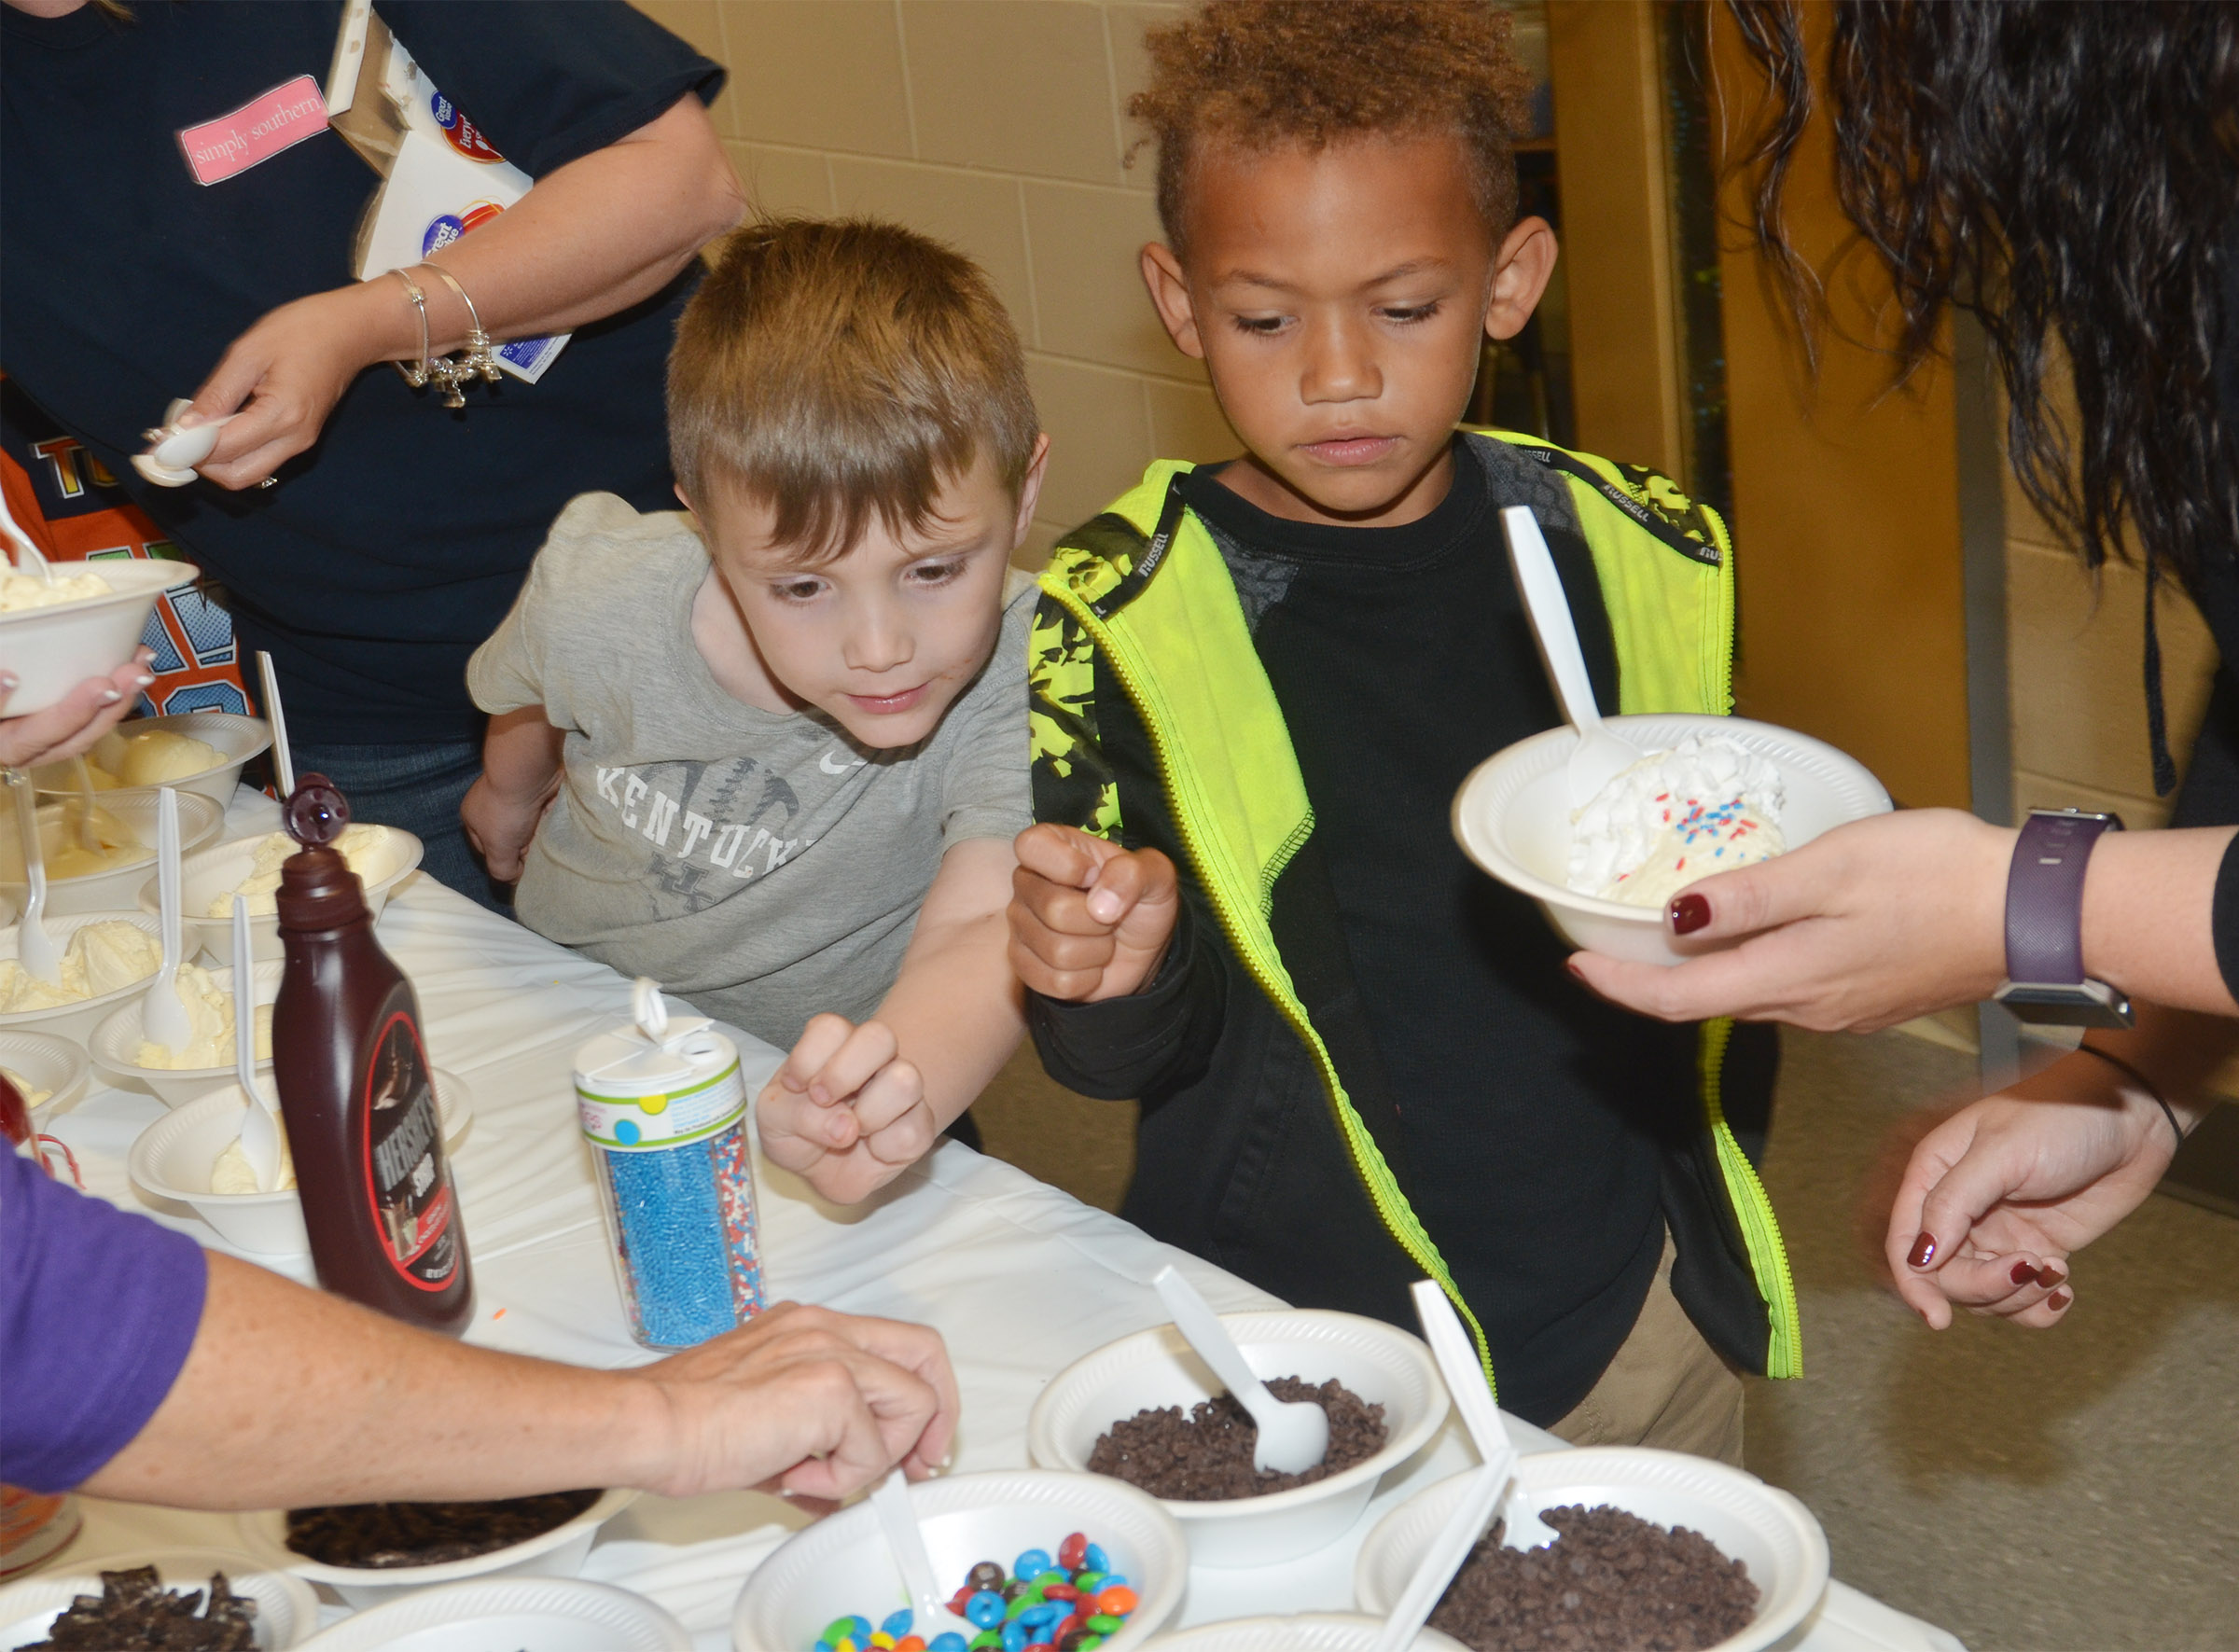 CES kindergarteners John Lane, at left, and Treshaun Robinson are served their ice cream sundaes.